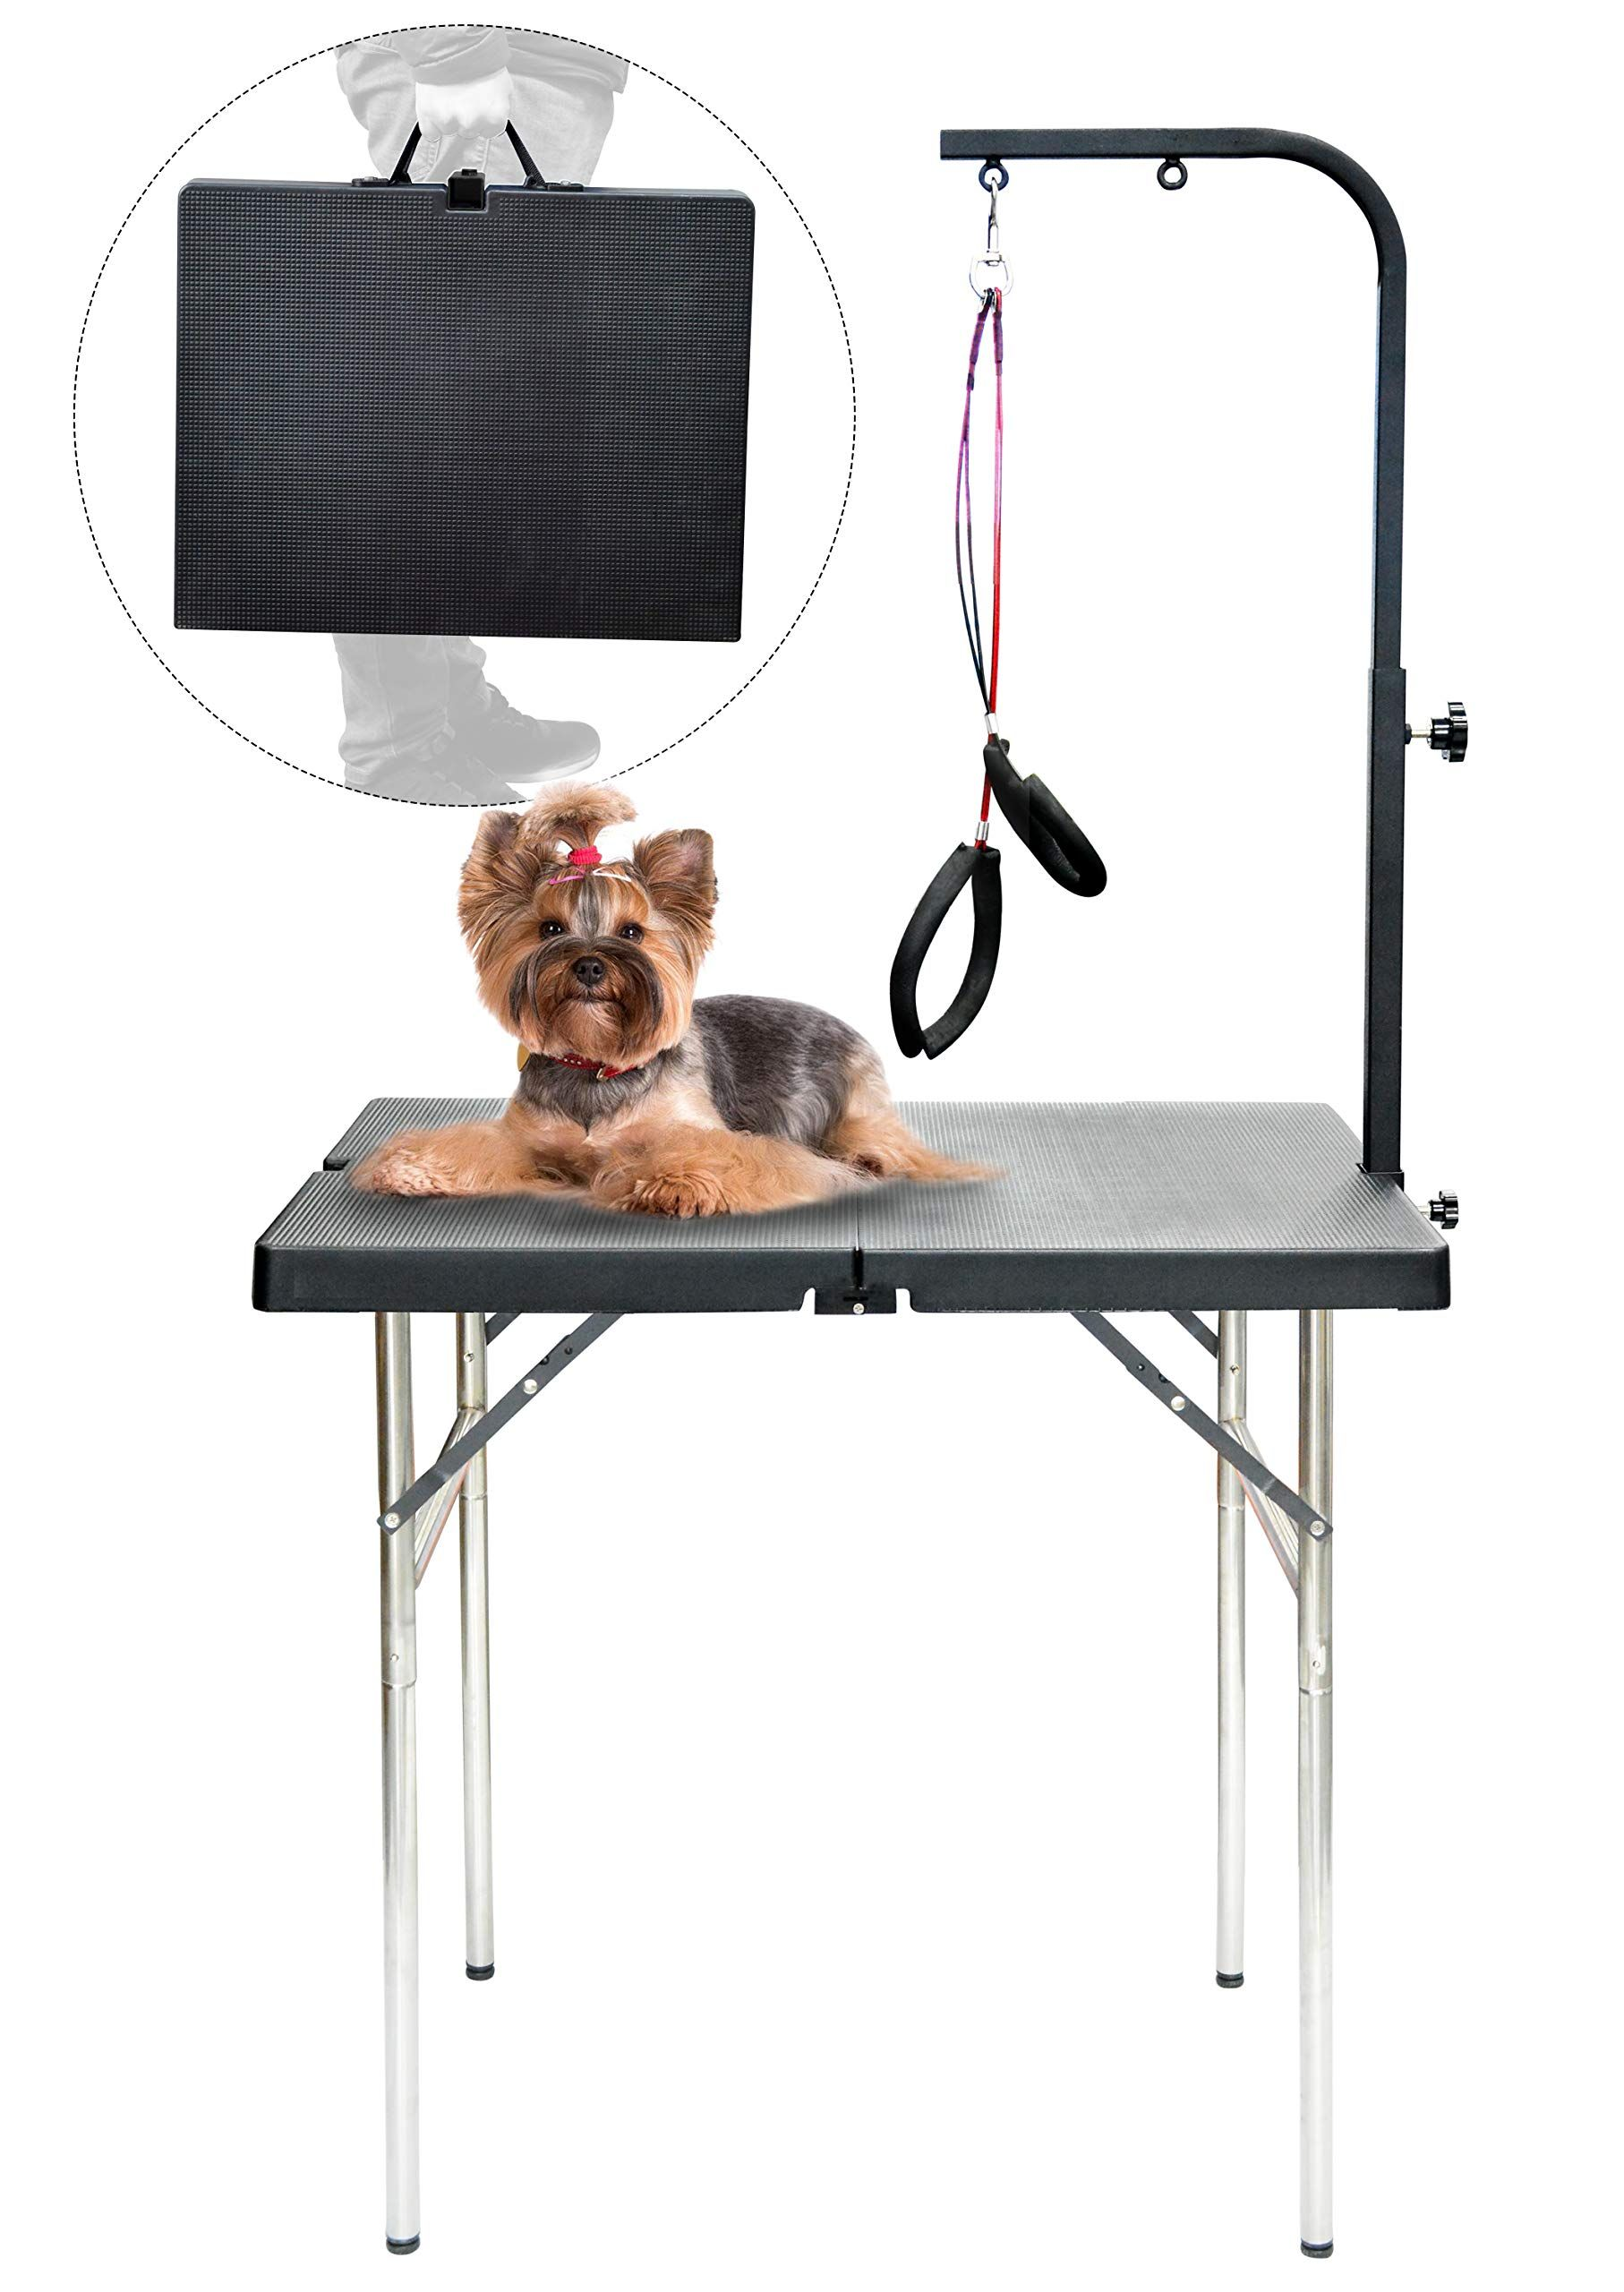 Shelandy Pet Portable Grooming Table In 2020 Pet Dogs Dog Grooming Pets